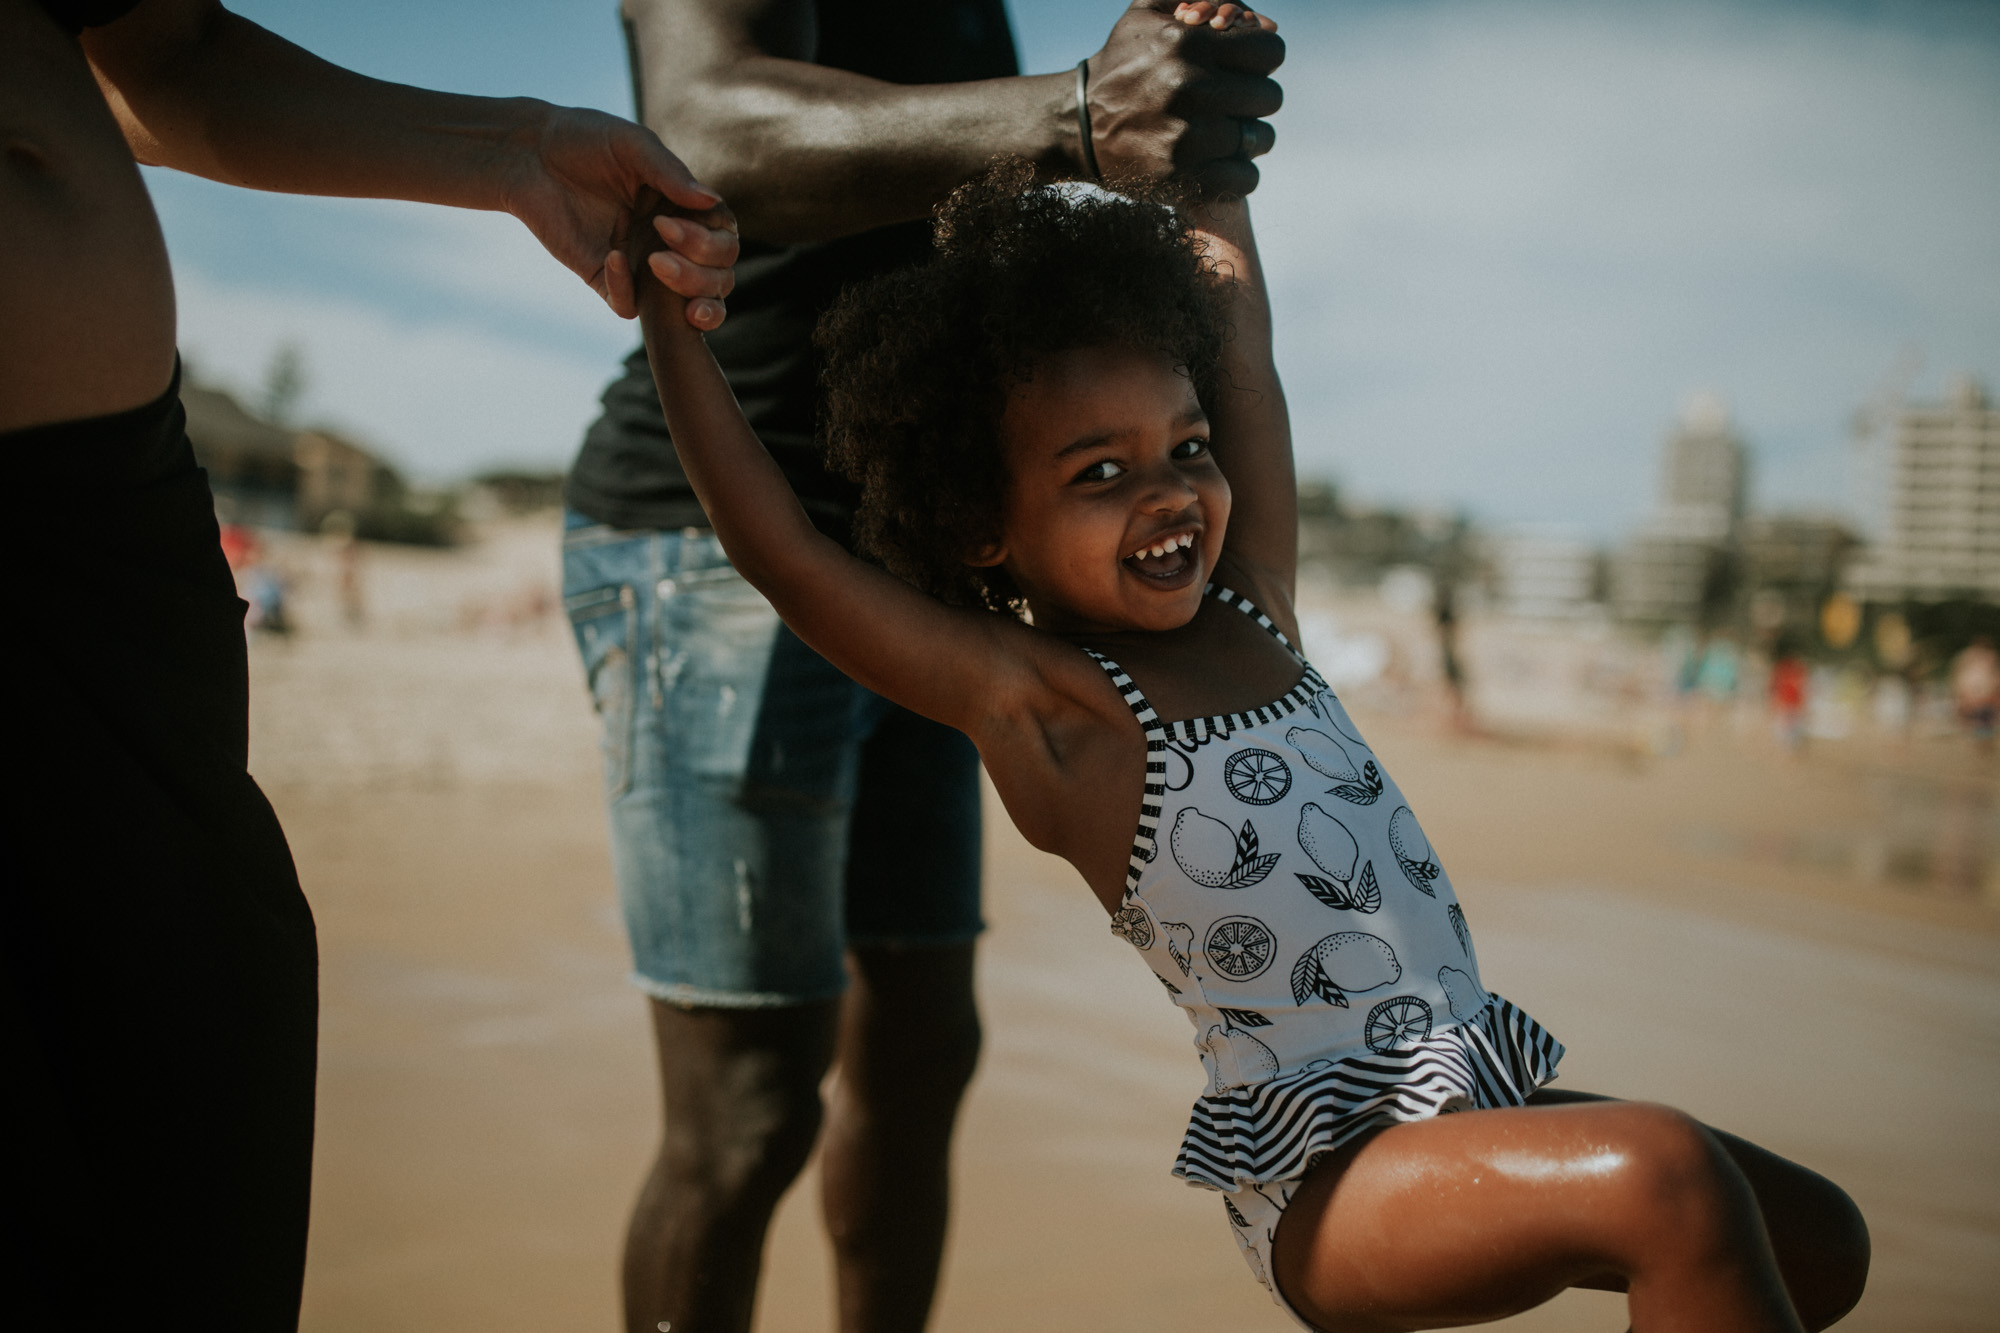 Justine-curran-family-photography-8.jpg